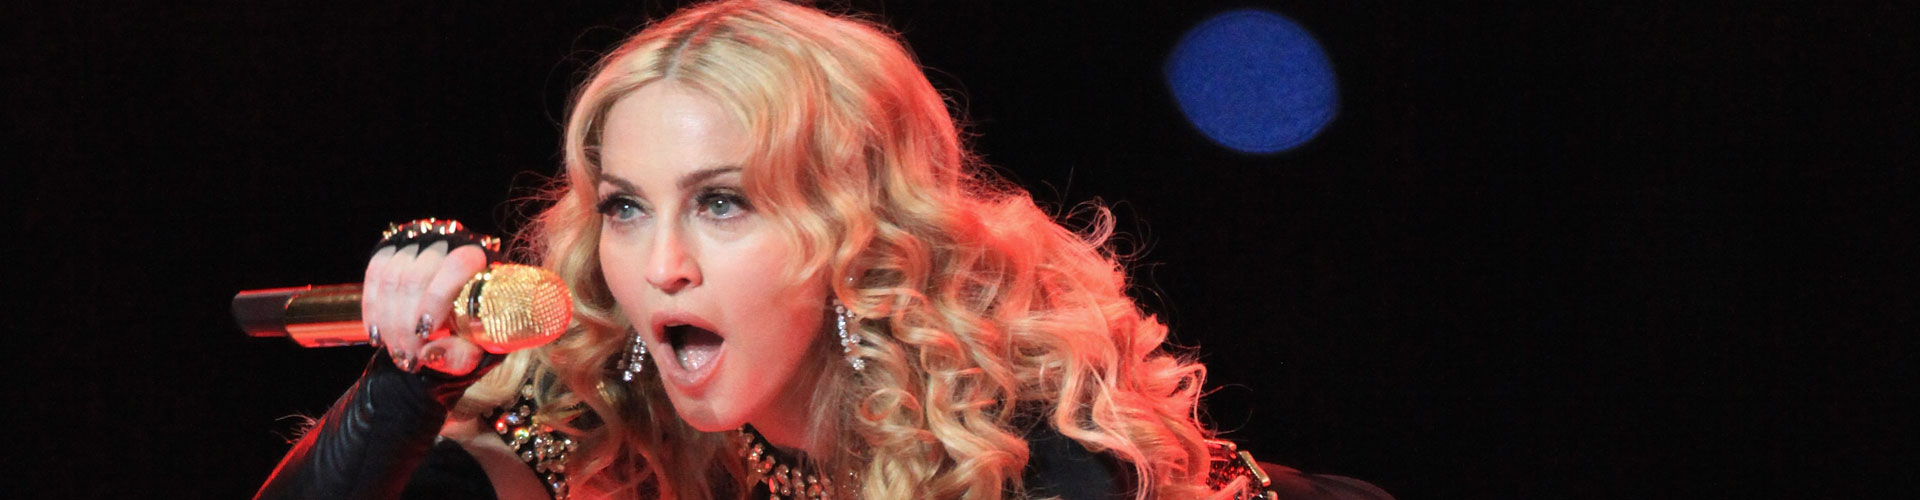 How Madonna's Rebel Heart Tour got her back on top